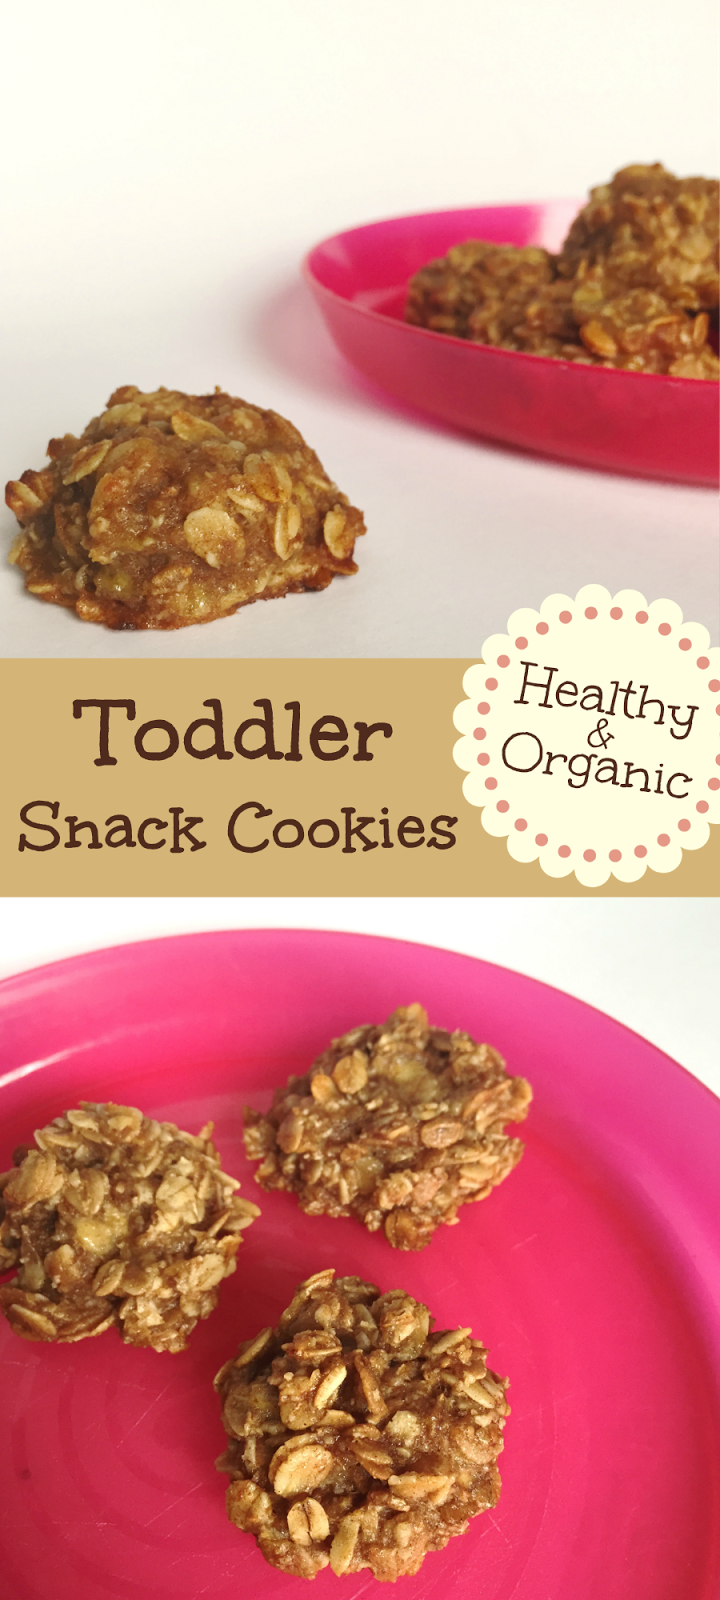 Toddler Snacks Simple And Quick For Toddlers Party IdeasToddler FoodsHealthy